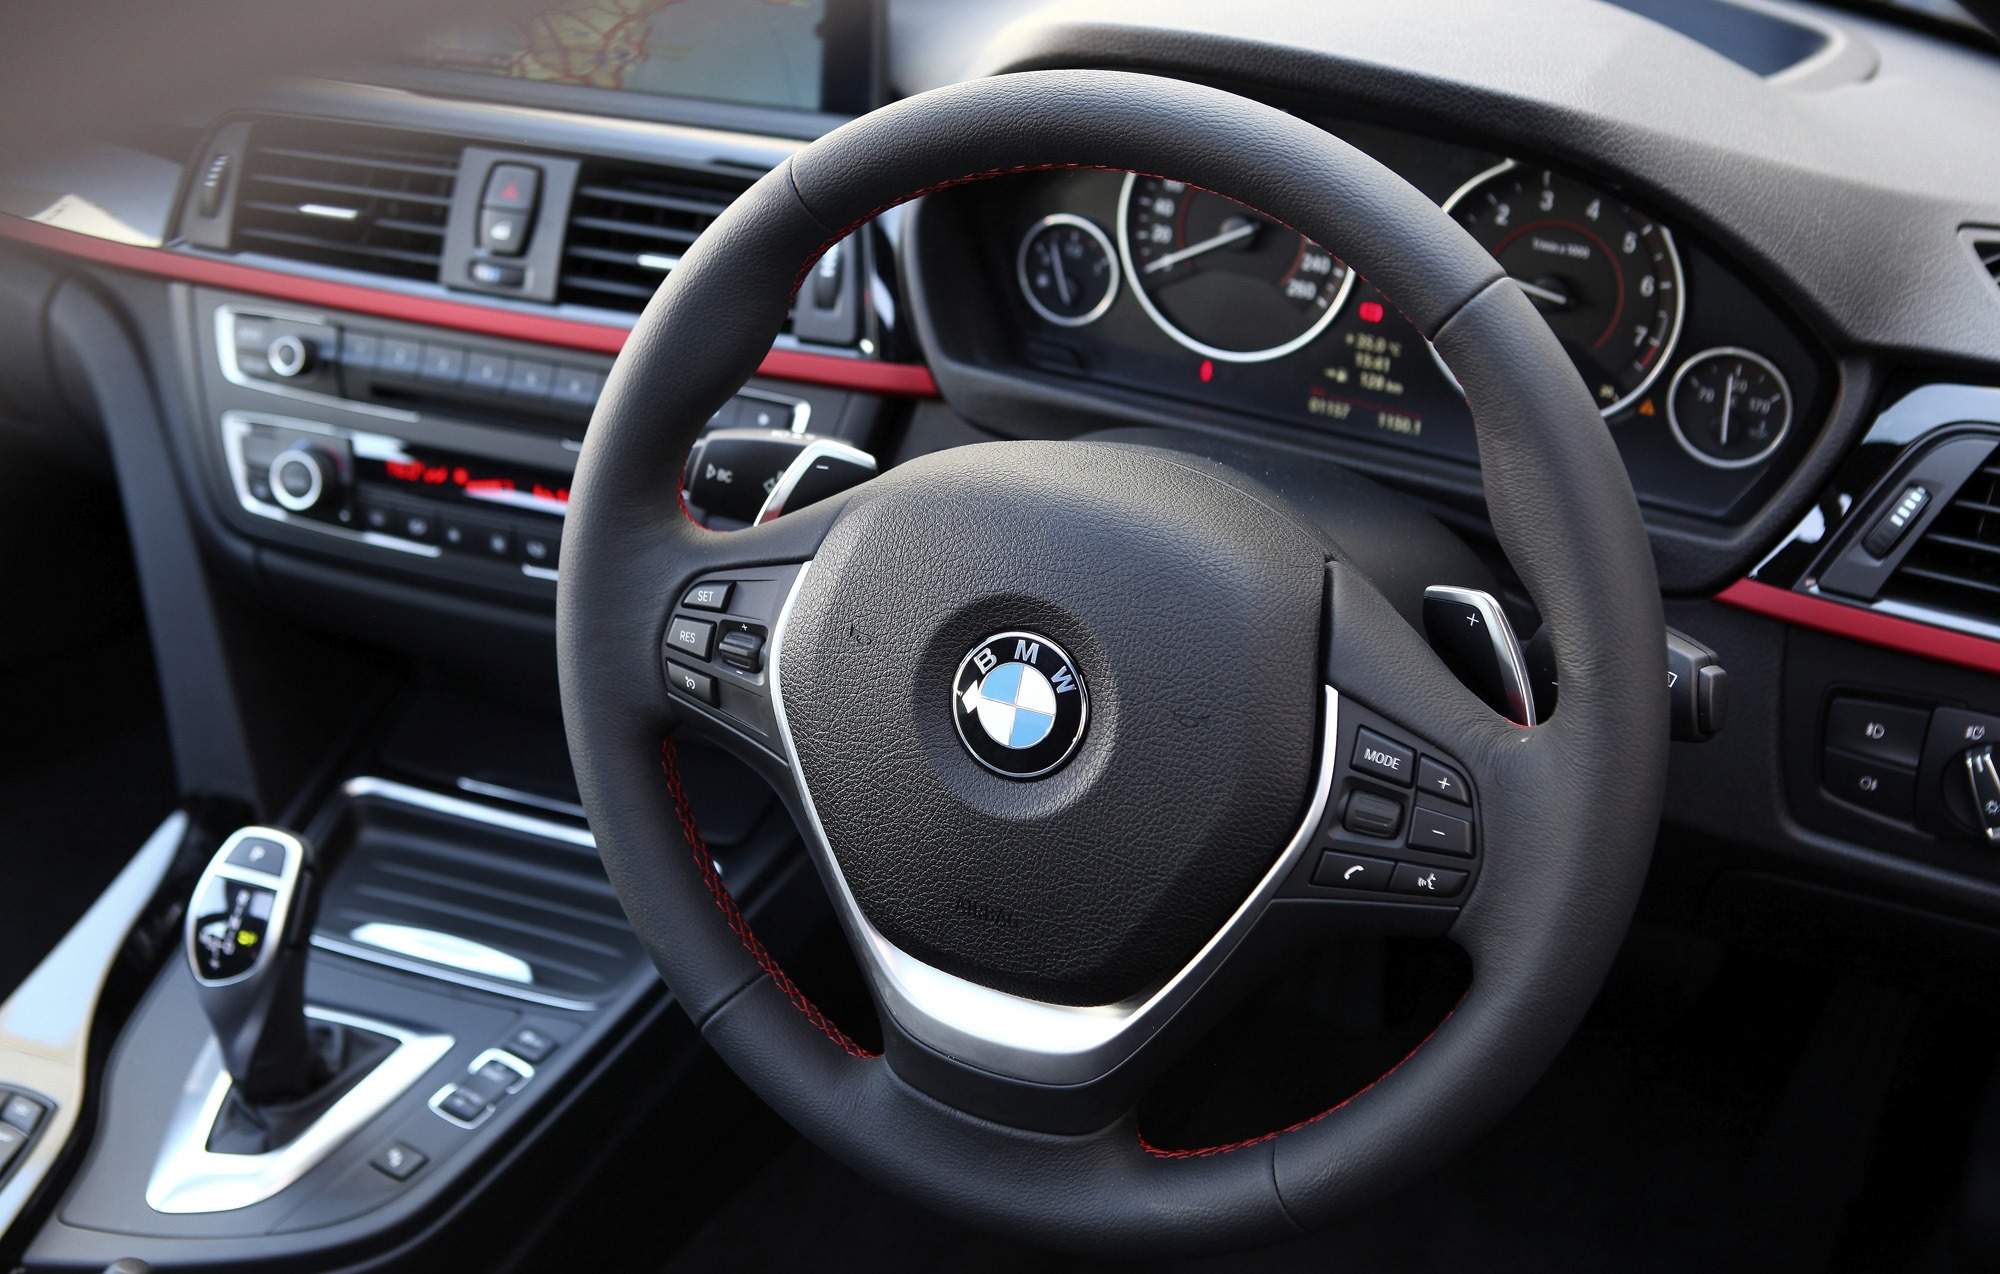 BMW 3 Series 2018 Interior Dashboard